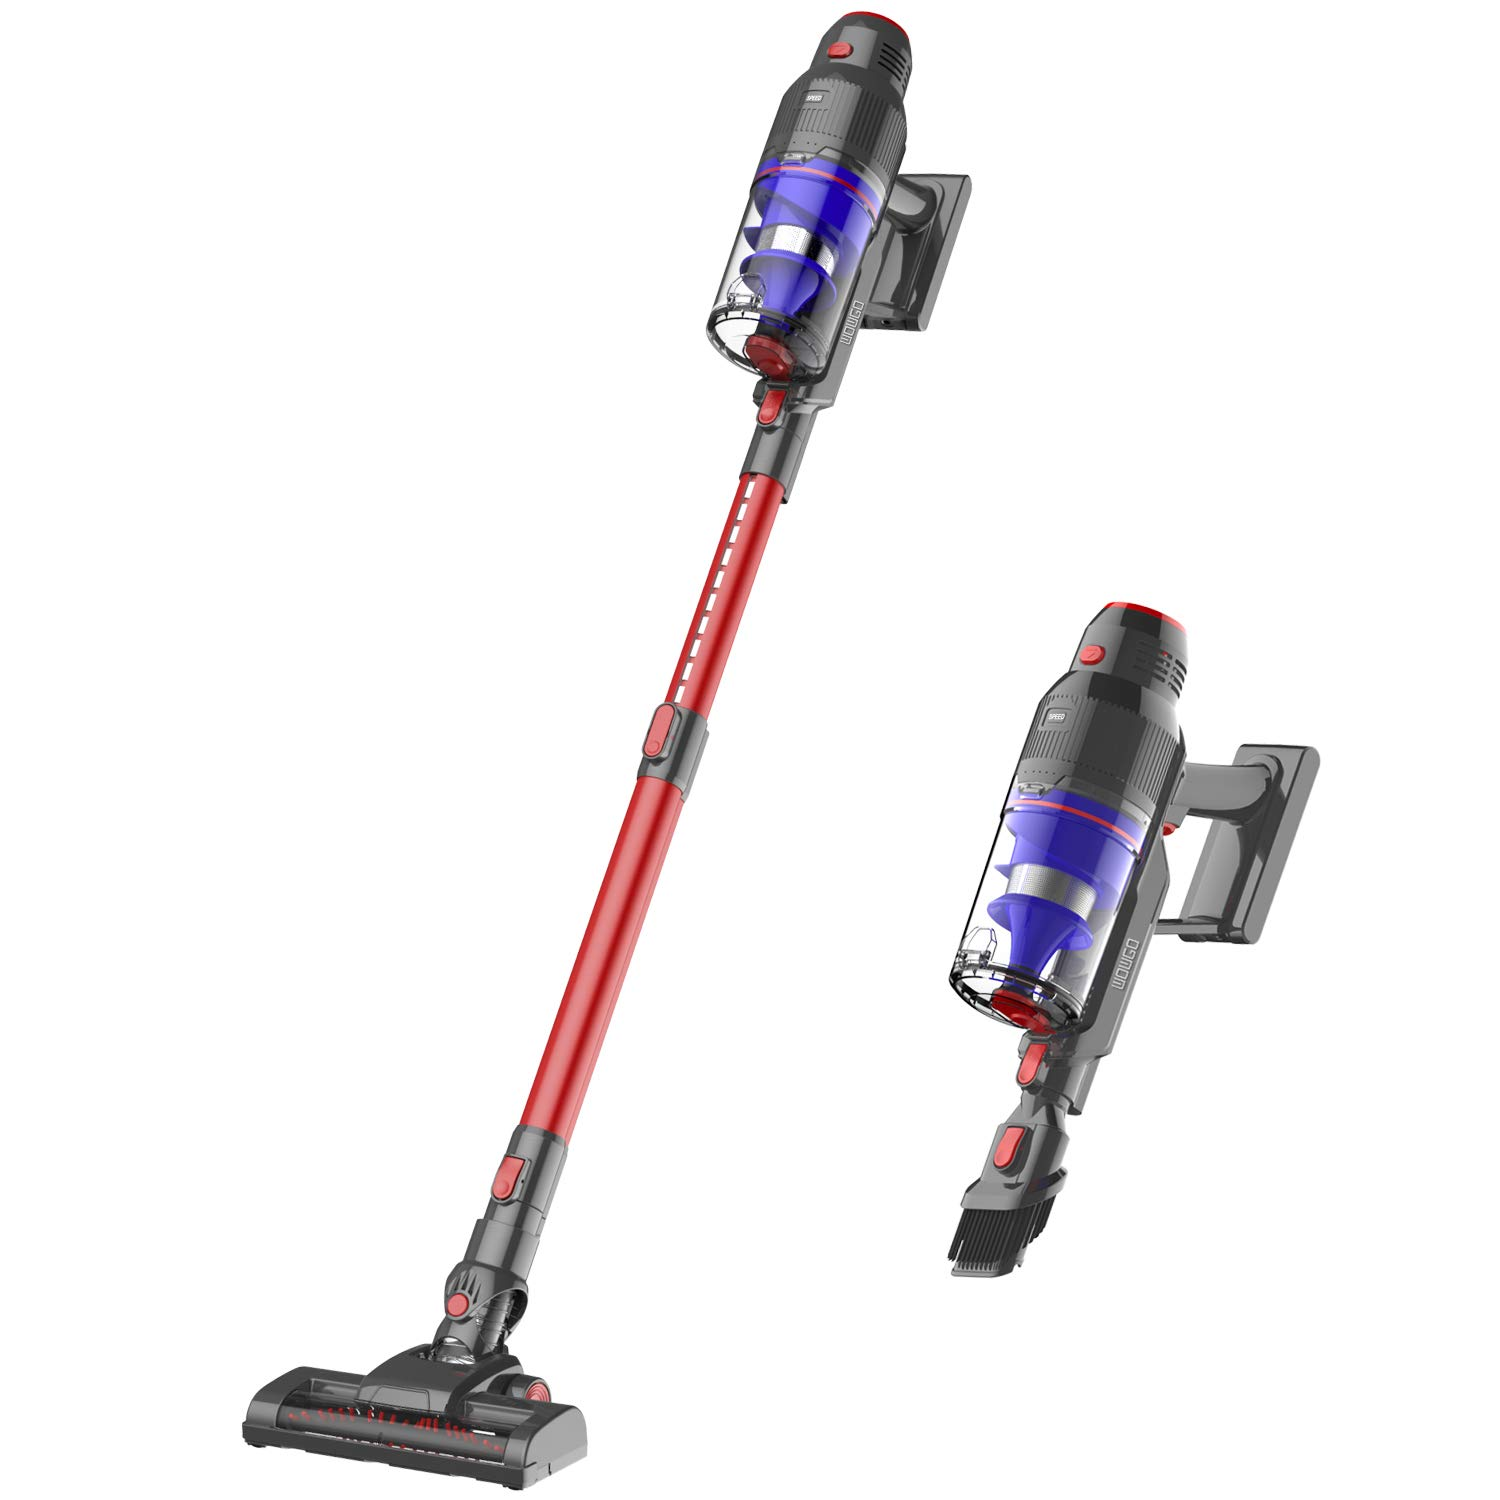 WOWGO Cordless Stick Vacuum Cleaner - 20Kpa Powerful Suction Handheld Vacuum with Adjustable Tube and HEPA Filter for Hard Floor, Carpet and Car by WOWGO